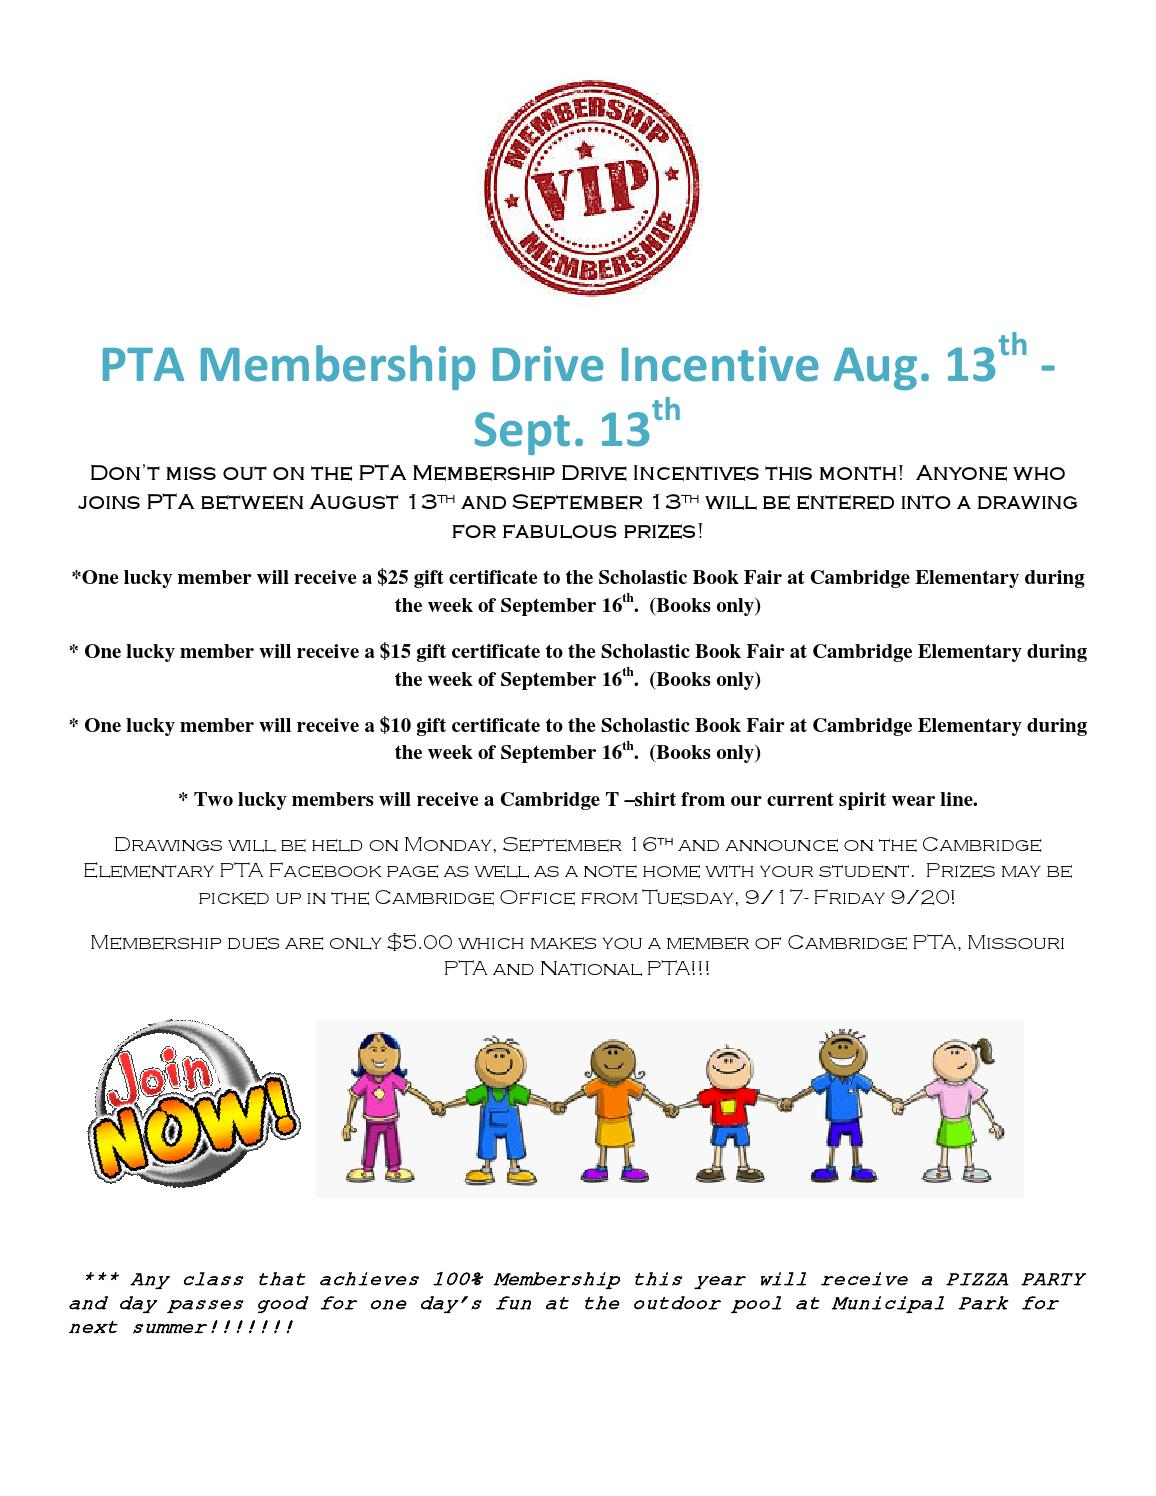 Aug sep member incentives by Theresa Borntreger - issuu